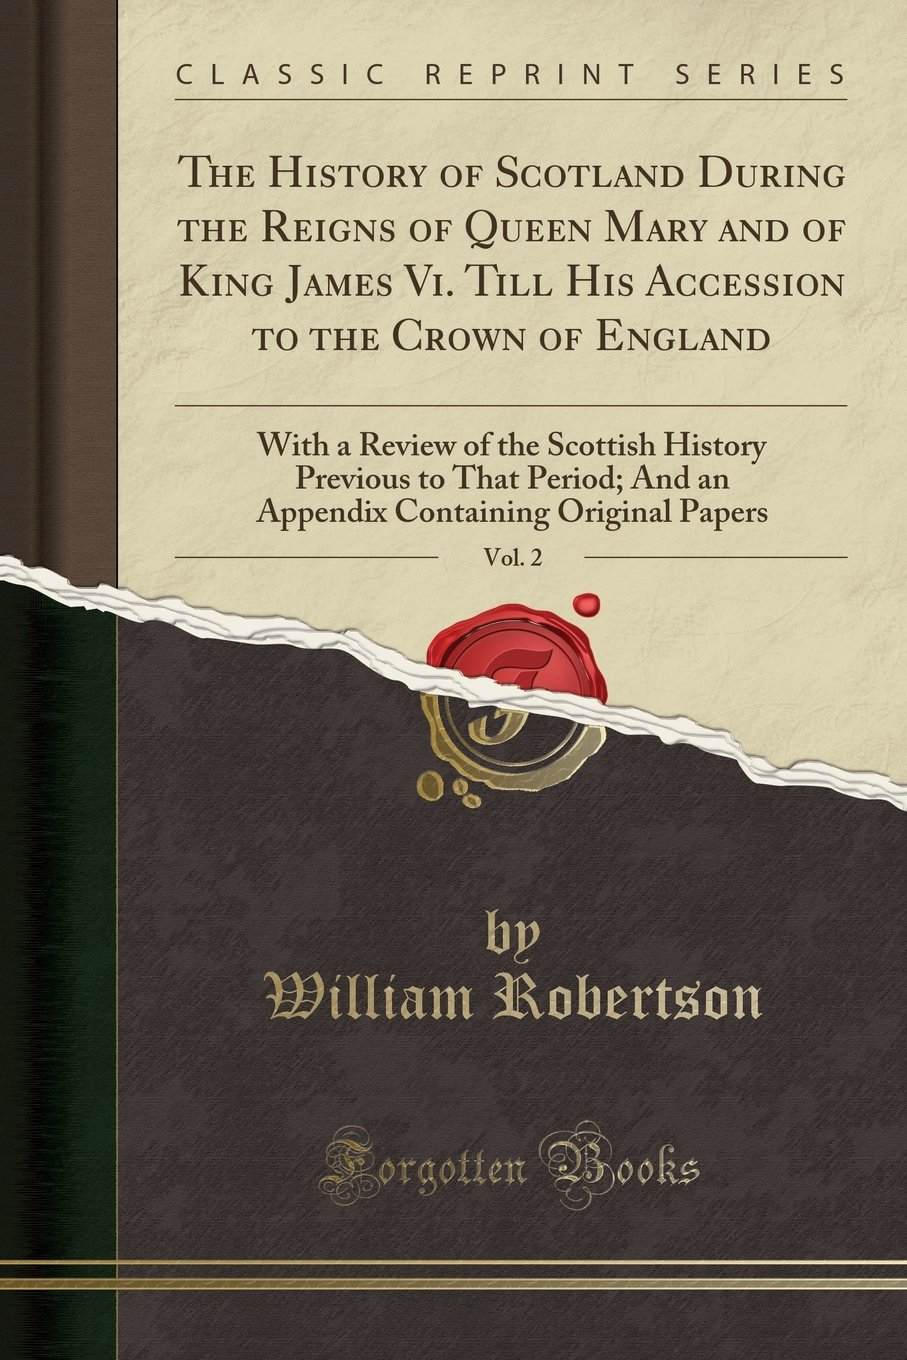 The History of Scotland During the Reigns of Queen Mary and of King James Vi. Till His Accession to the Crown of England, Vol. 2: With a Review of the Containing Original Papers (Classic Reprint) PDF